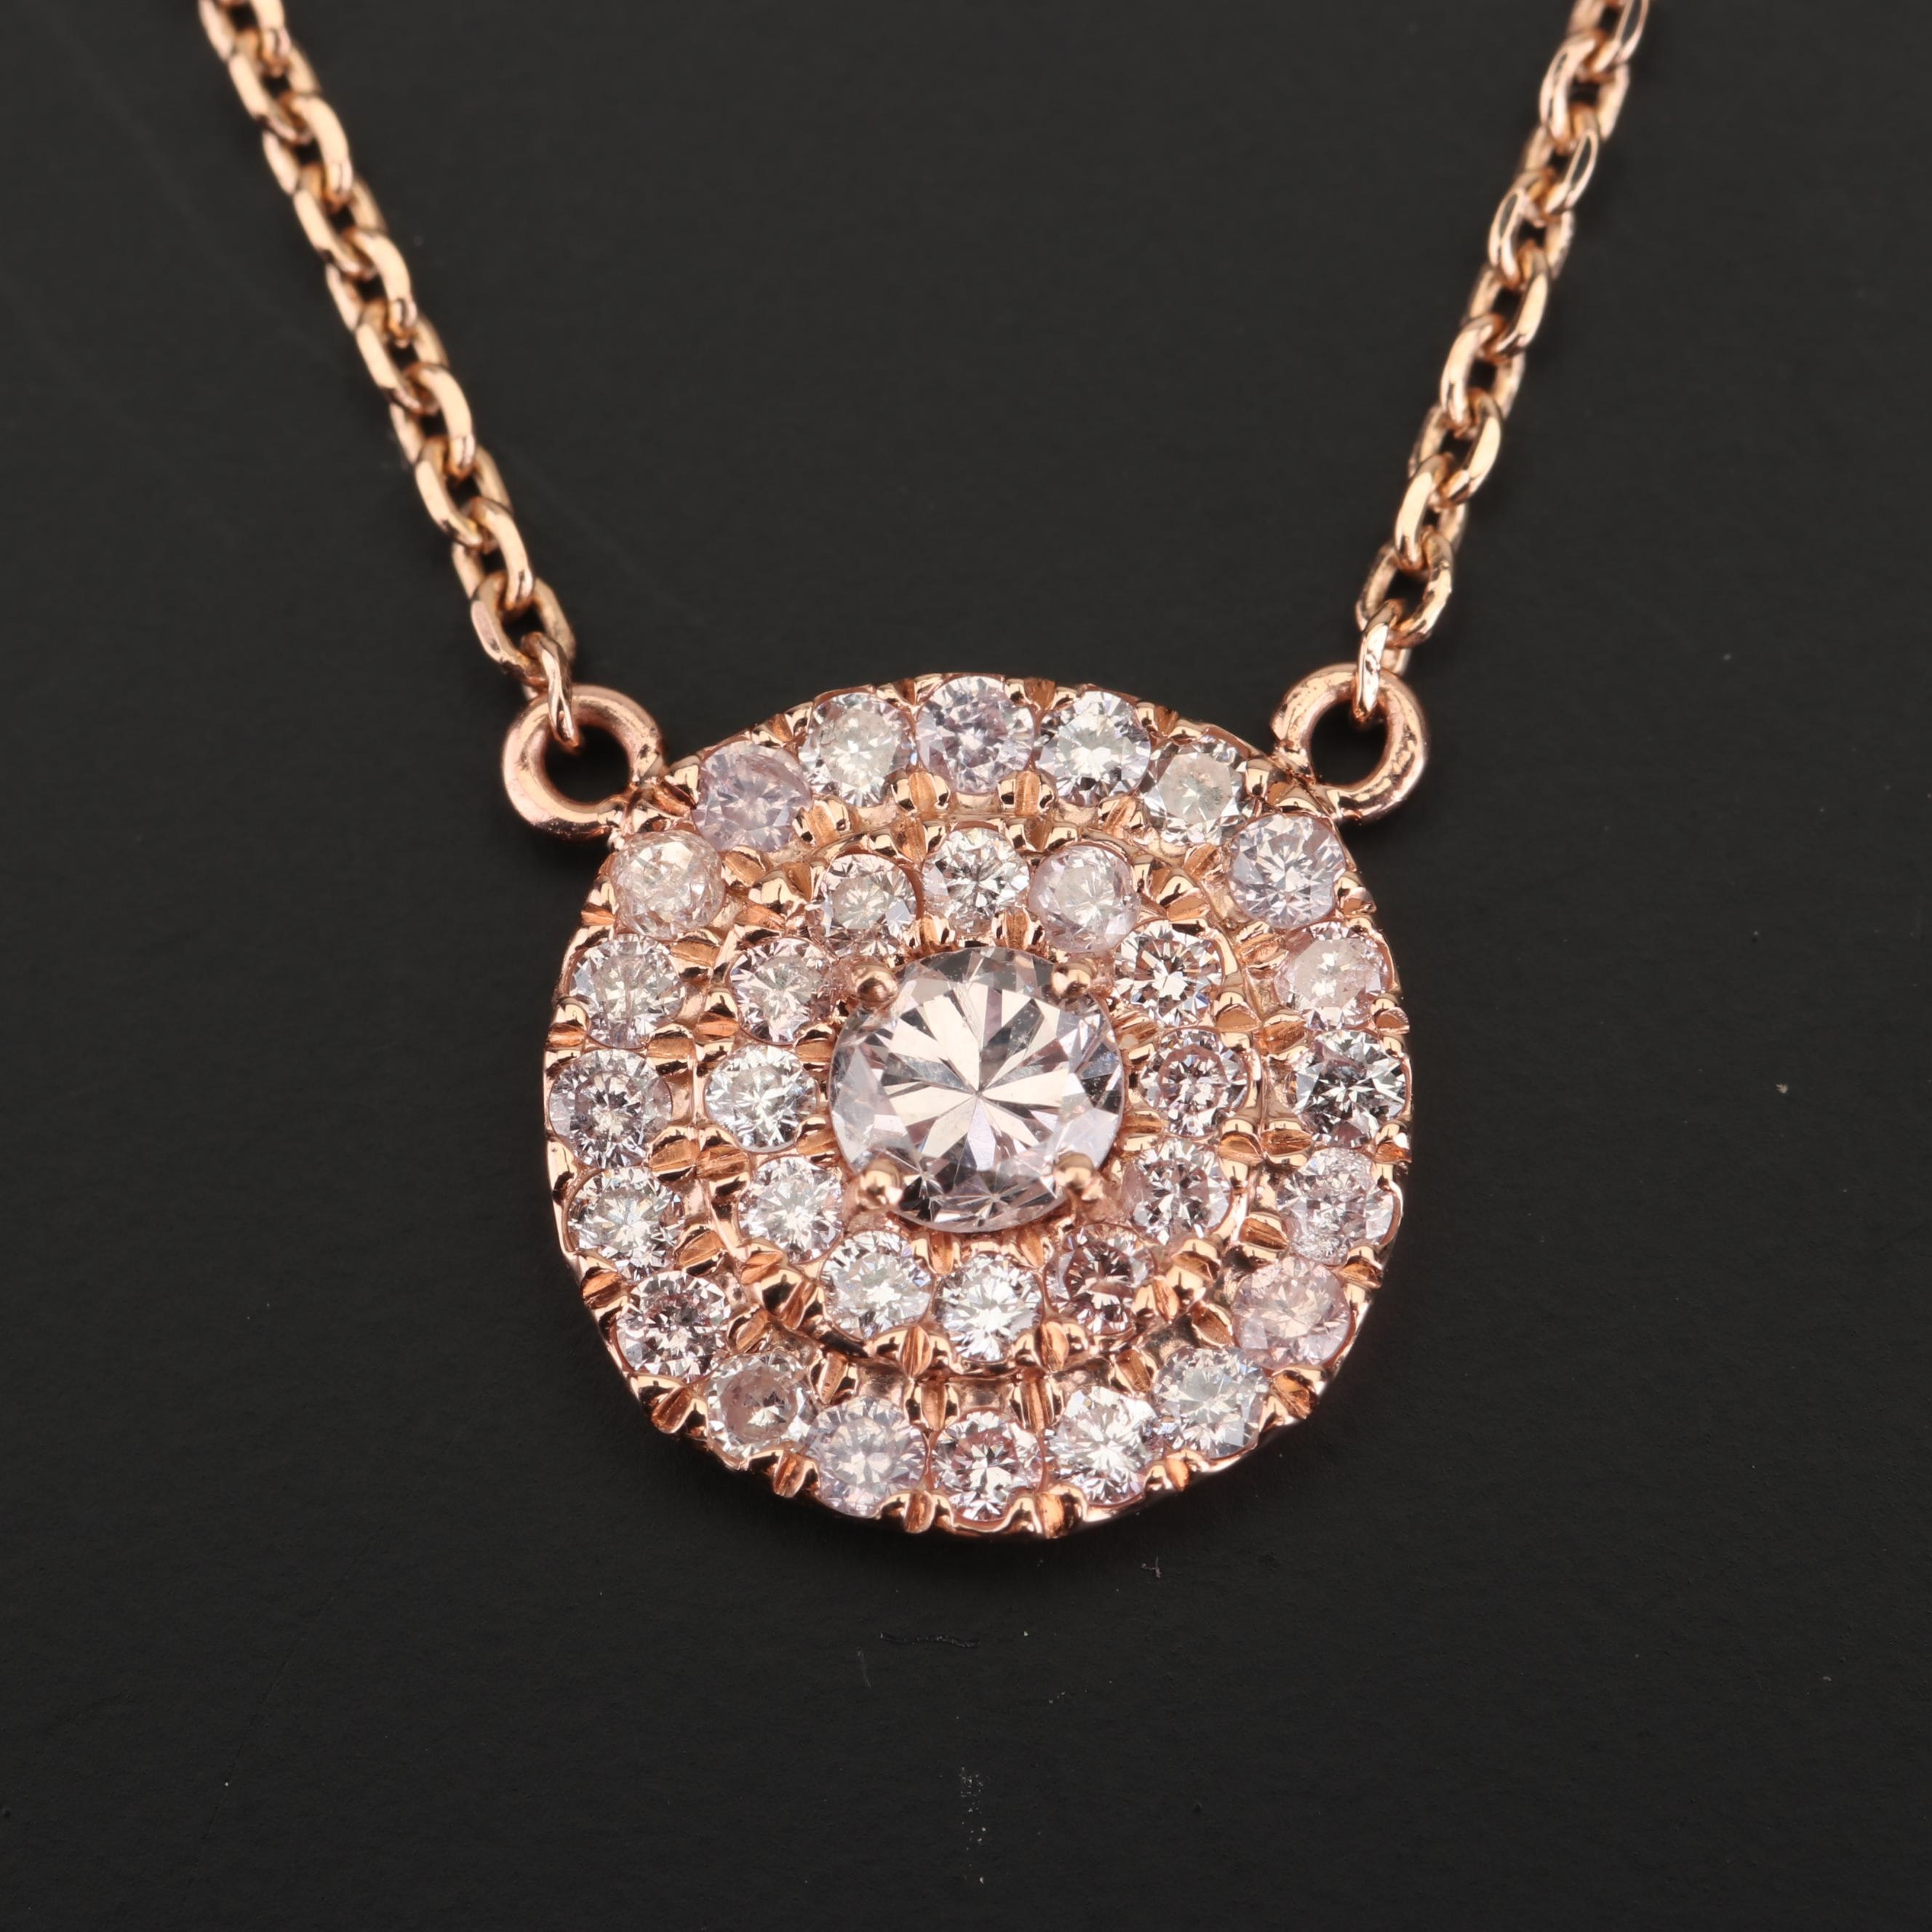 14K Rose Gold and Fancy Orangy Pink Diamond Pendant Necklace with GIA Report